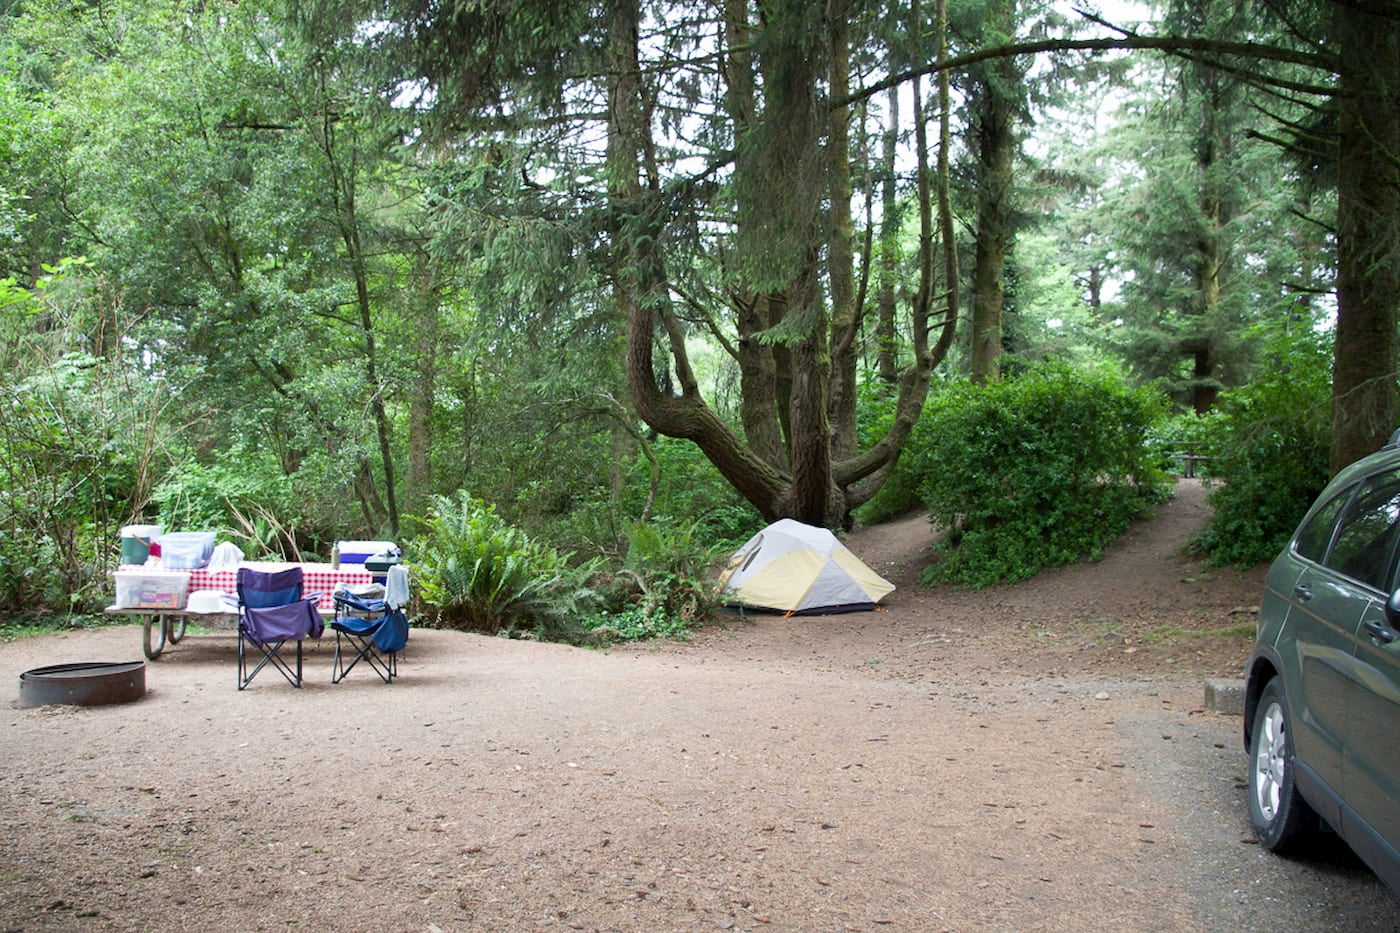 Tent, car, and camp chairs set up in a cleared area in a fern forest.